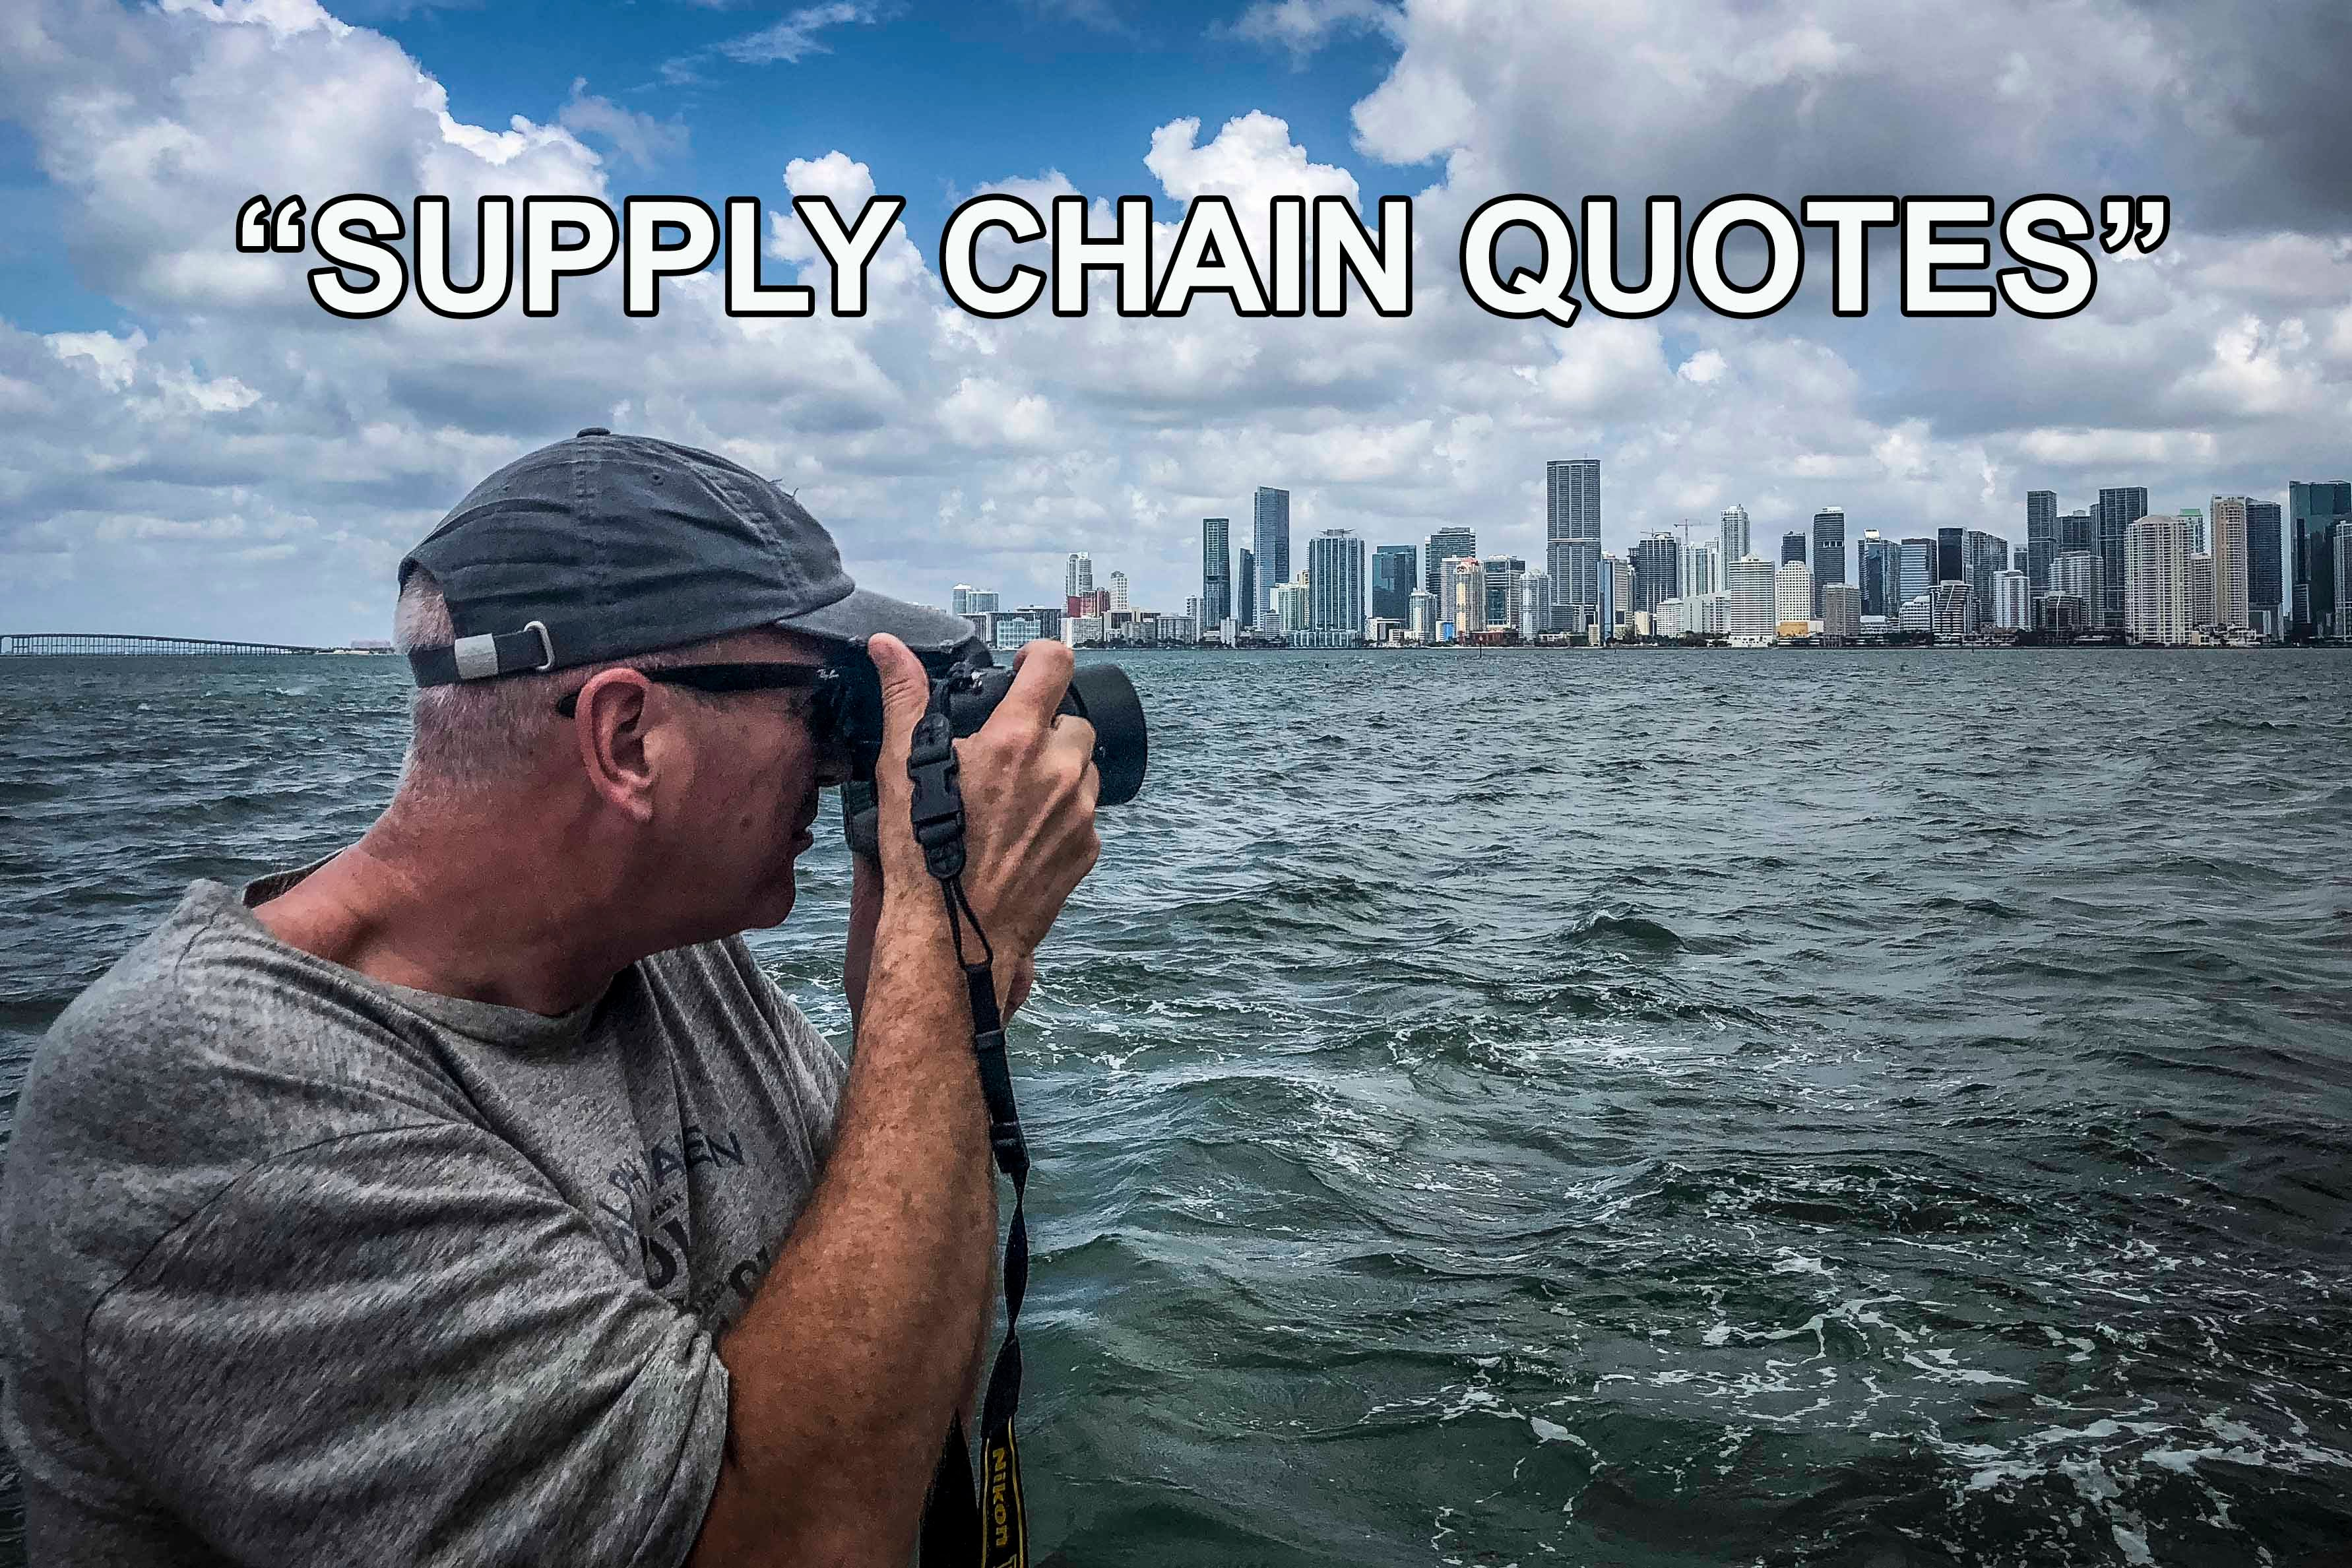 Supply Chain Quotes